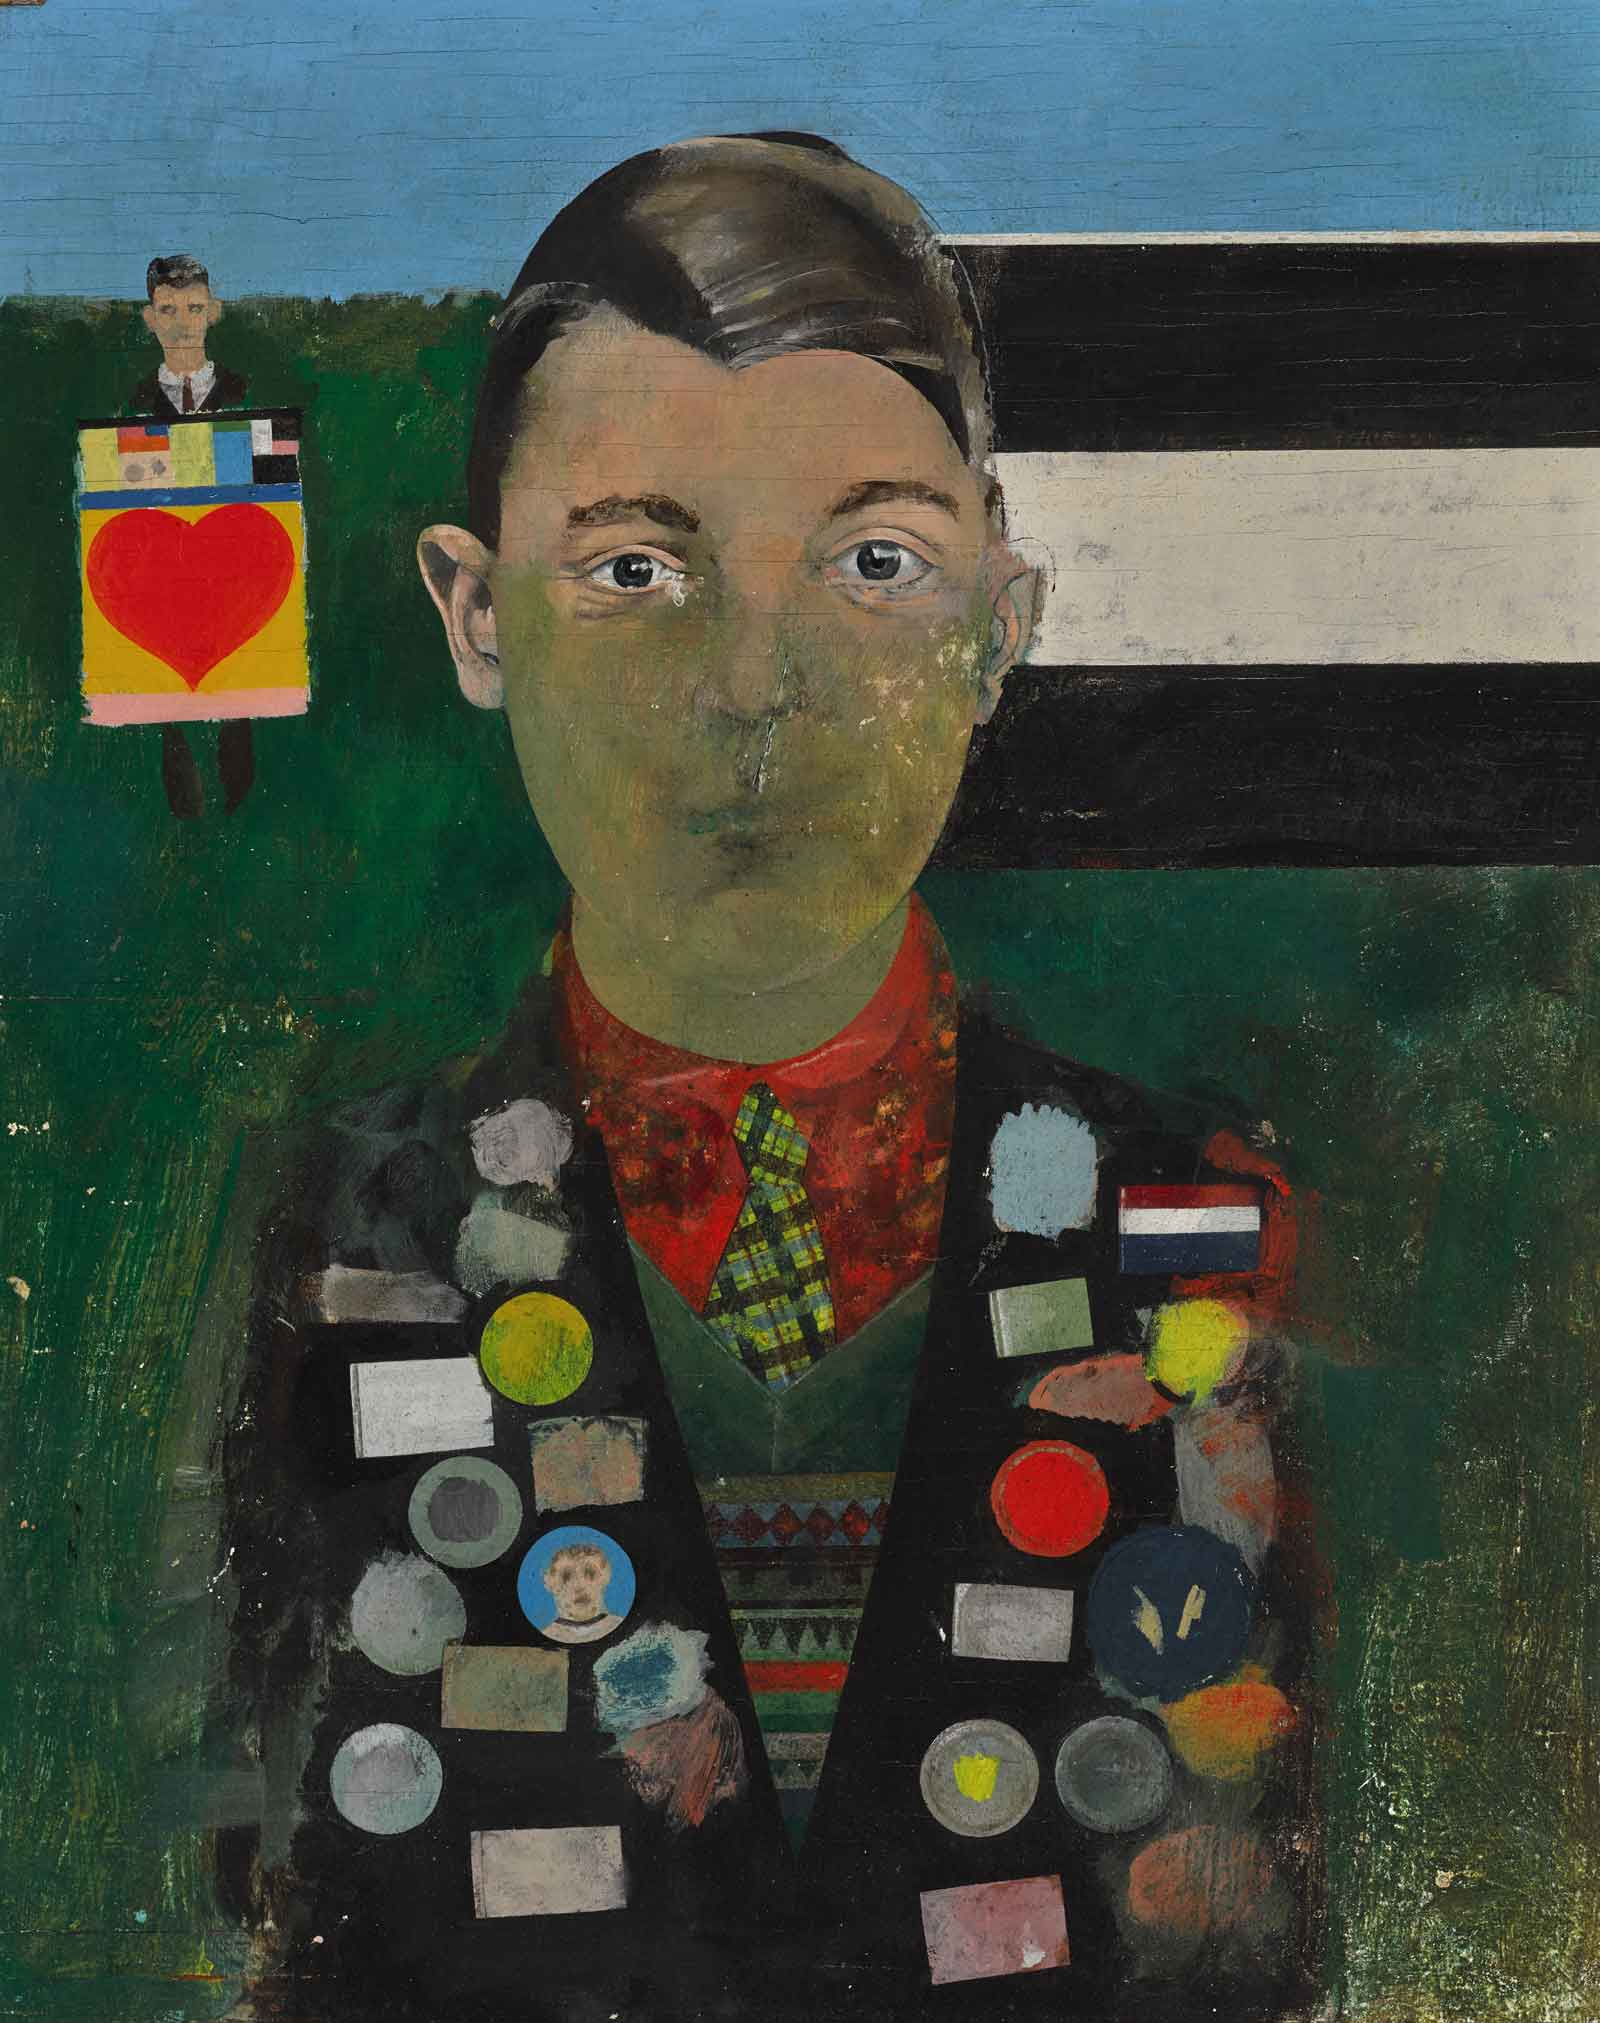 A boy wearing a jacket covered in badges stands against a green background with another man holding a painting of a heart behind him.